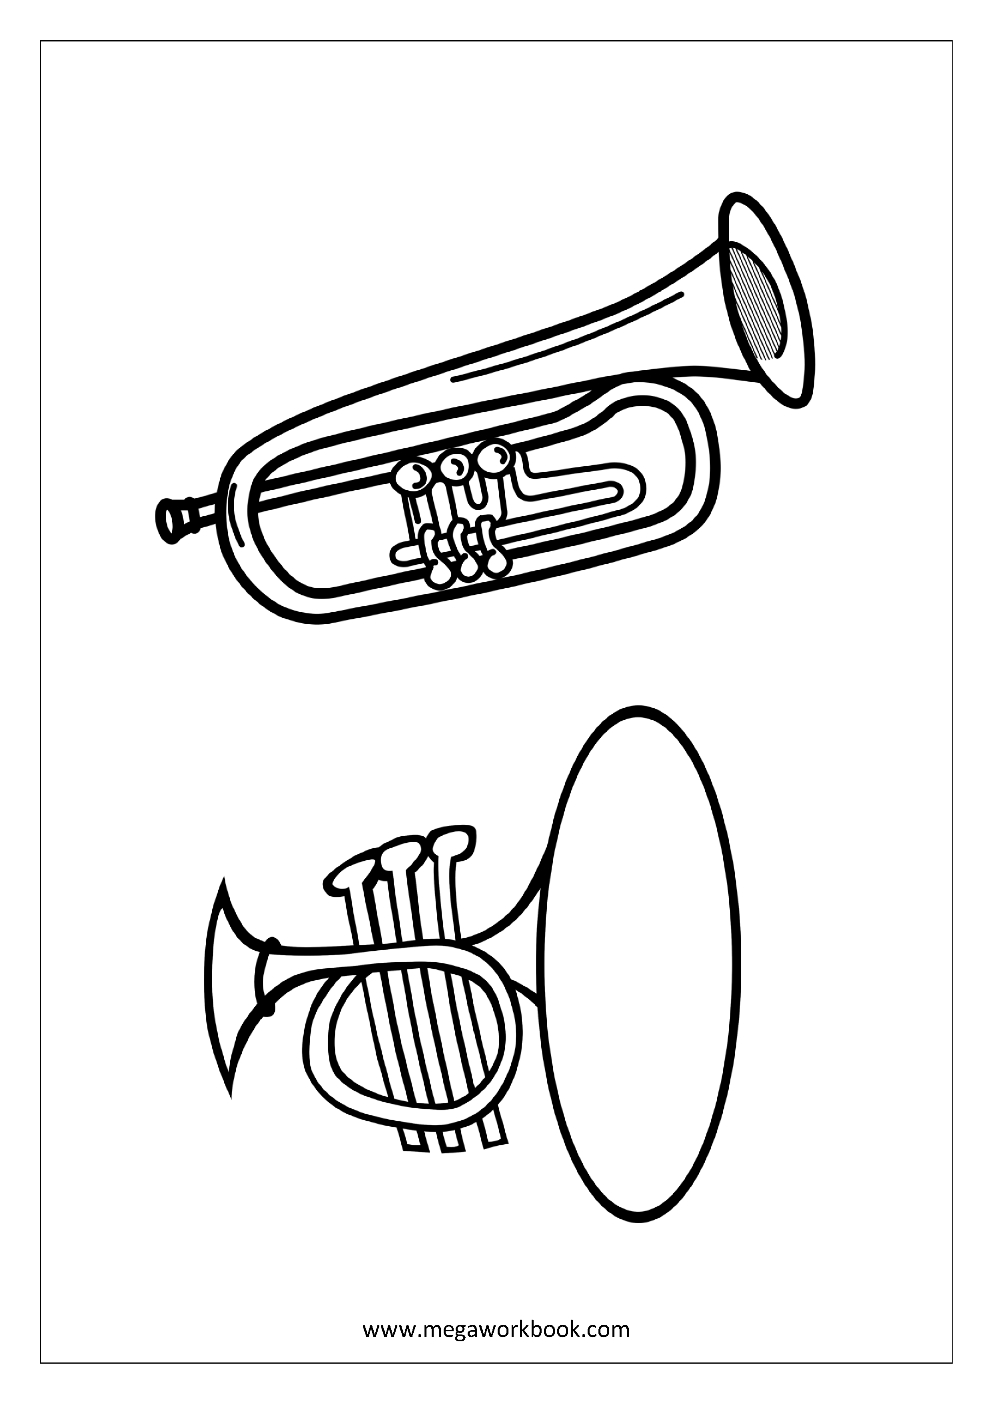 24 Trumpet Coloring Page Pictures Free Coloring Pages Part 2